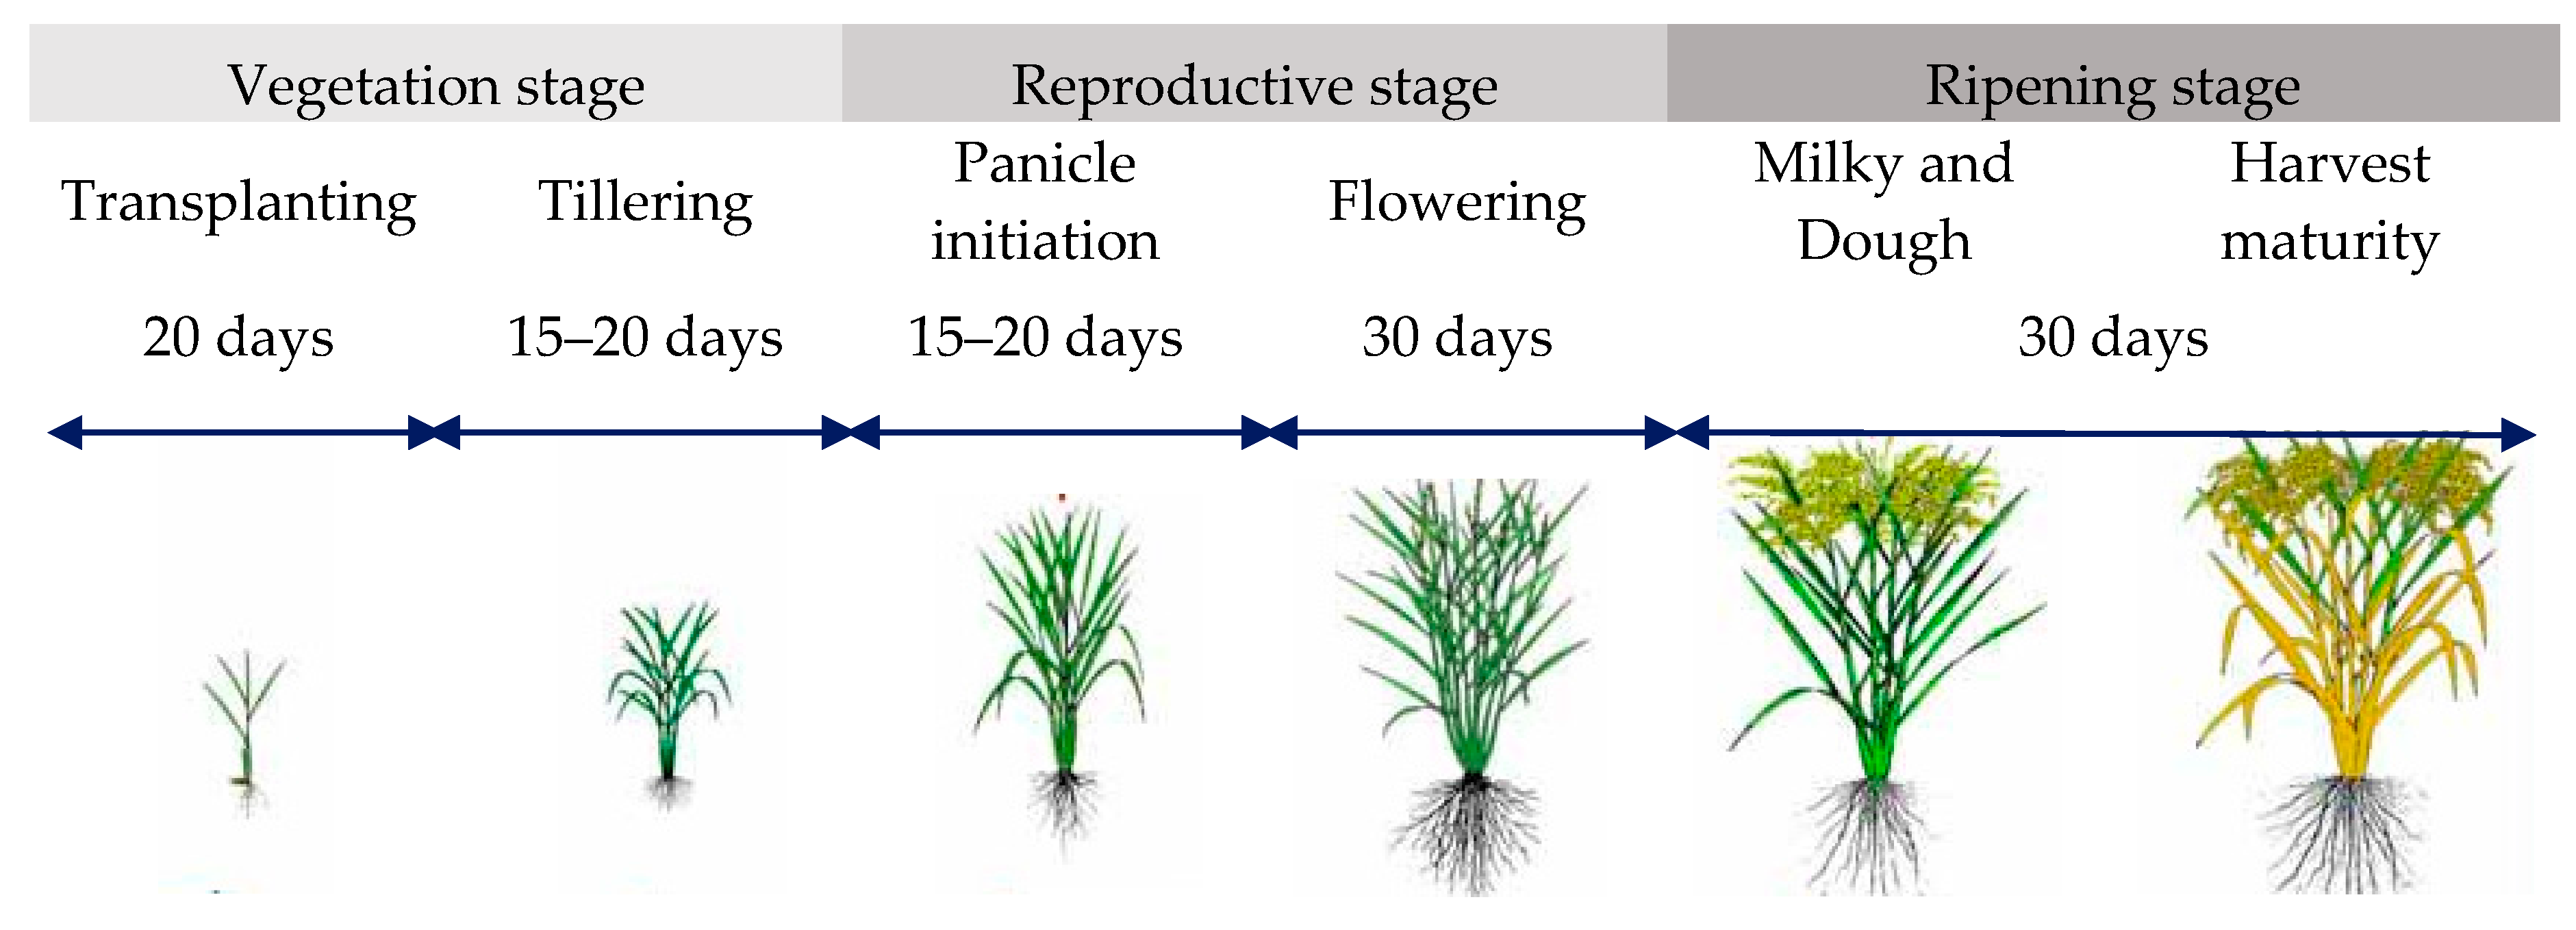 growth stages of a rice plant Insect pests attack all portions of the rice plant and all stages of plant growth feeding guilds consist of the (1) root feeders, (2) stem borers, (3) leafhoppers and planthoppers, (4.